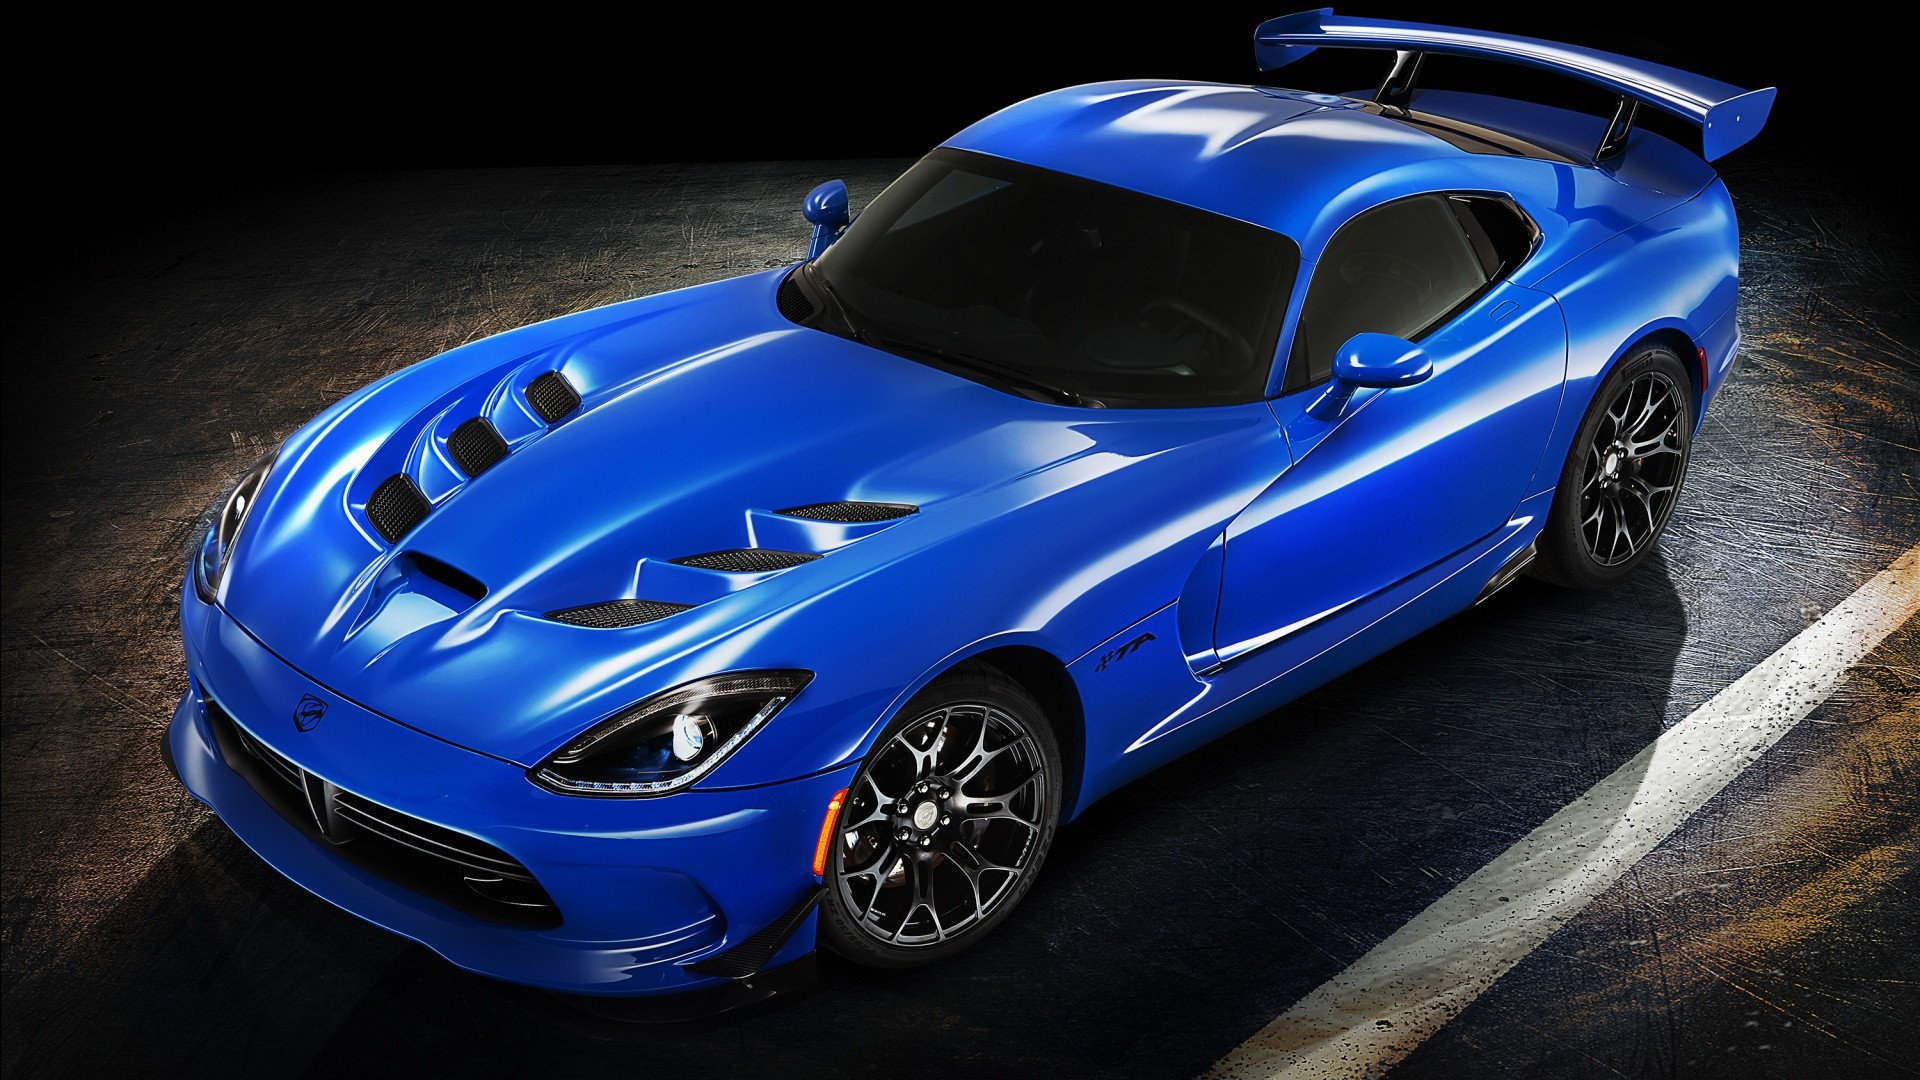 Exceptionnel 1920x1080 Dodge Viper SRT 10 Fantasy Fire Snake Car